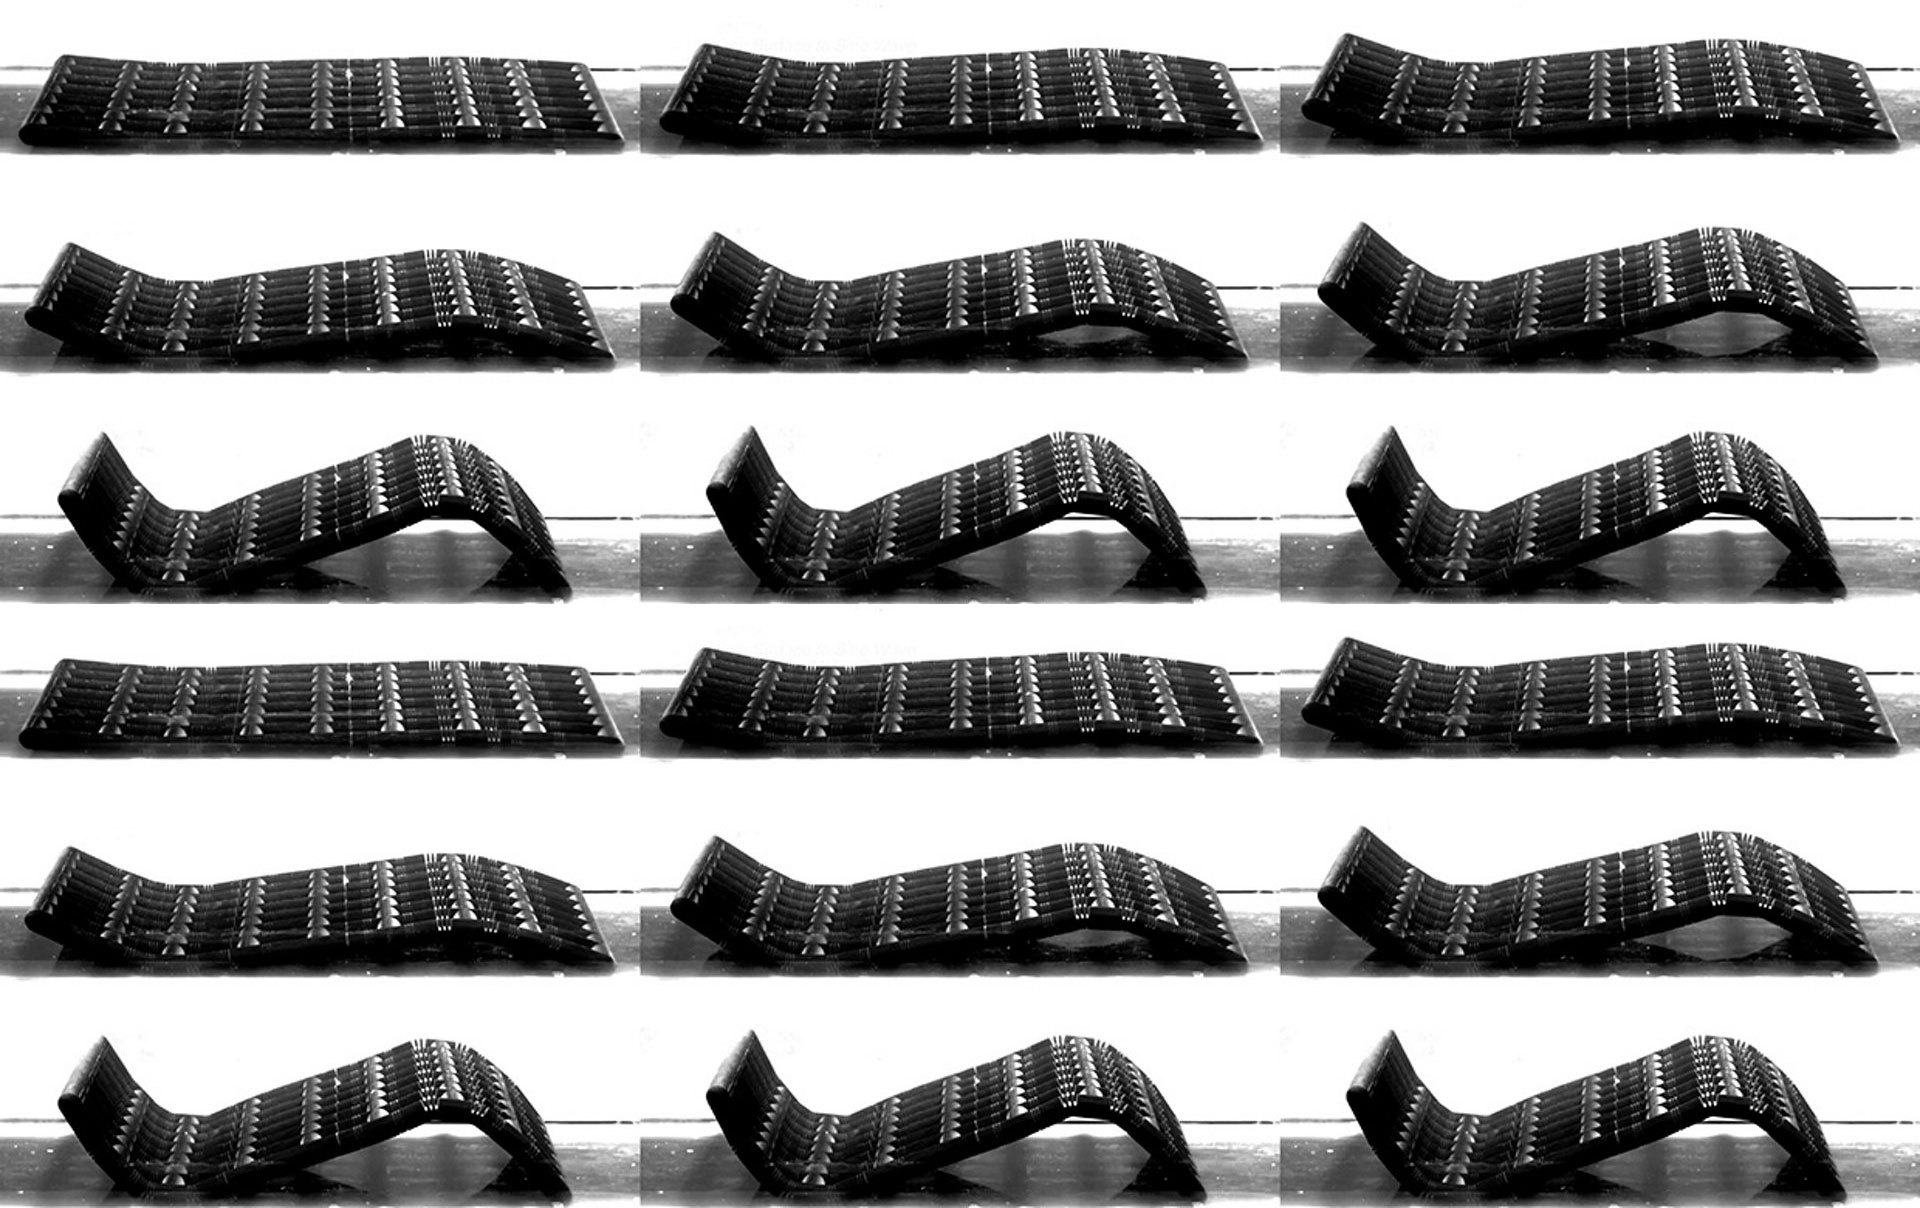 4D printing: The technology making self-repairing clothes a reality